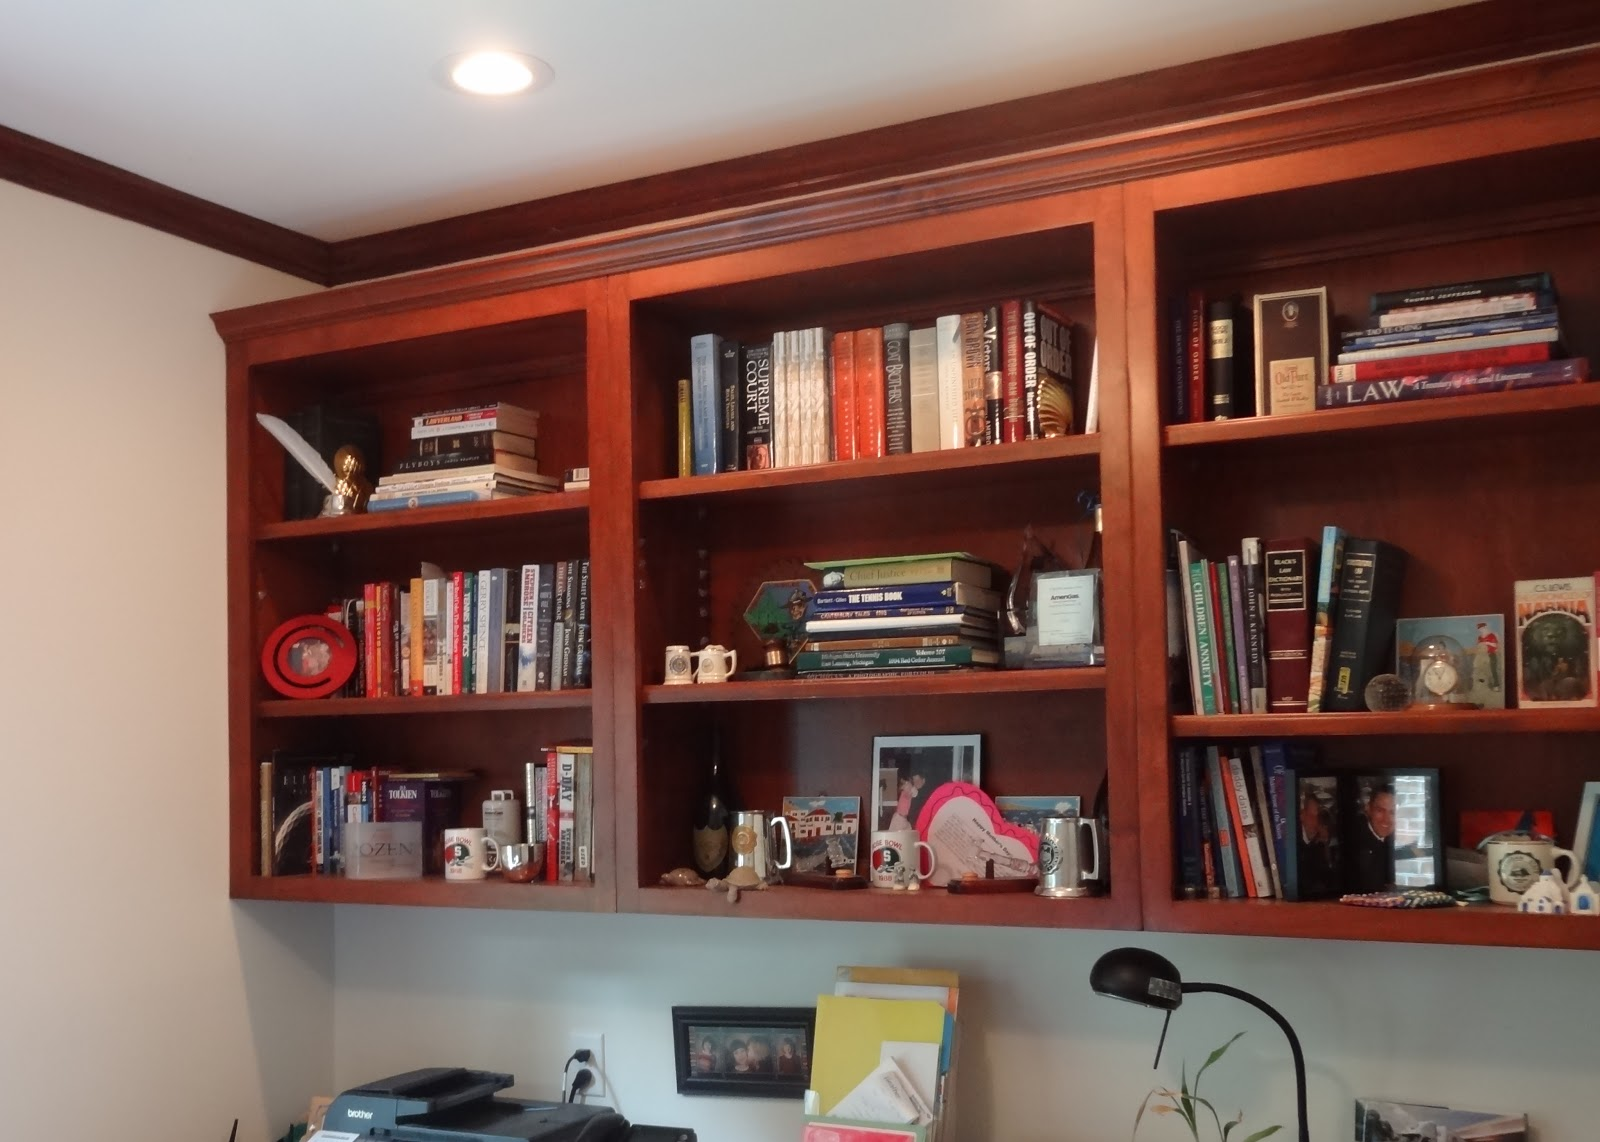 How To Make My Bookcases Look Better With Less Clutter